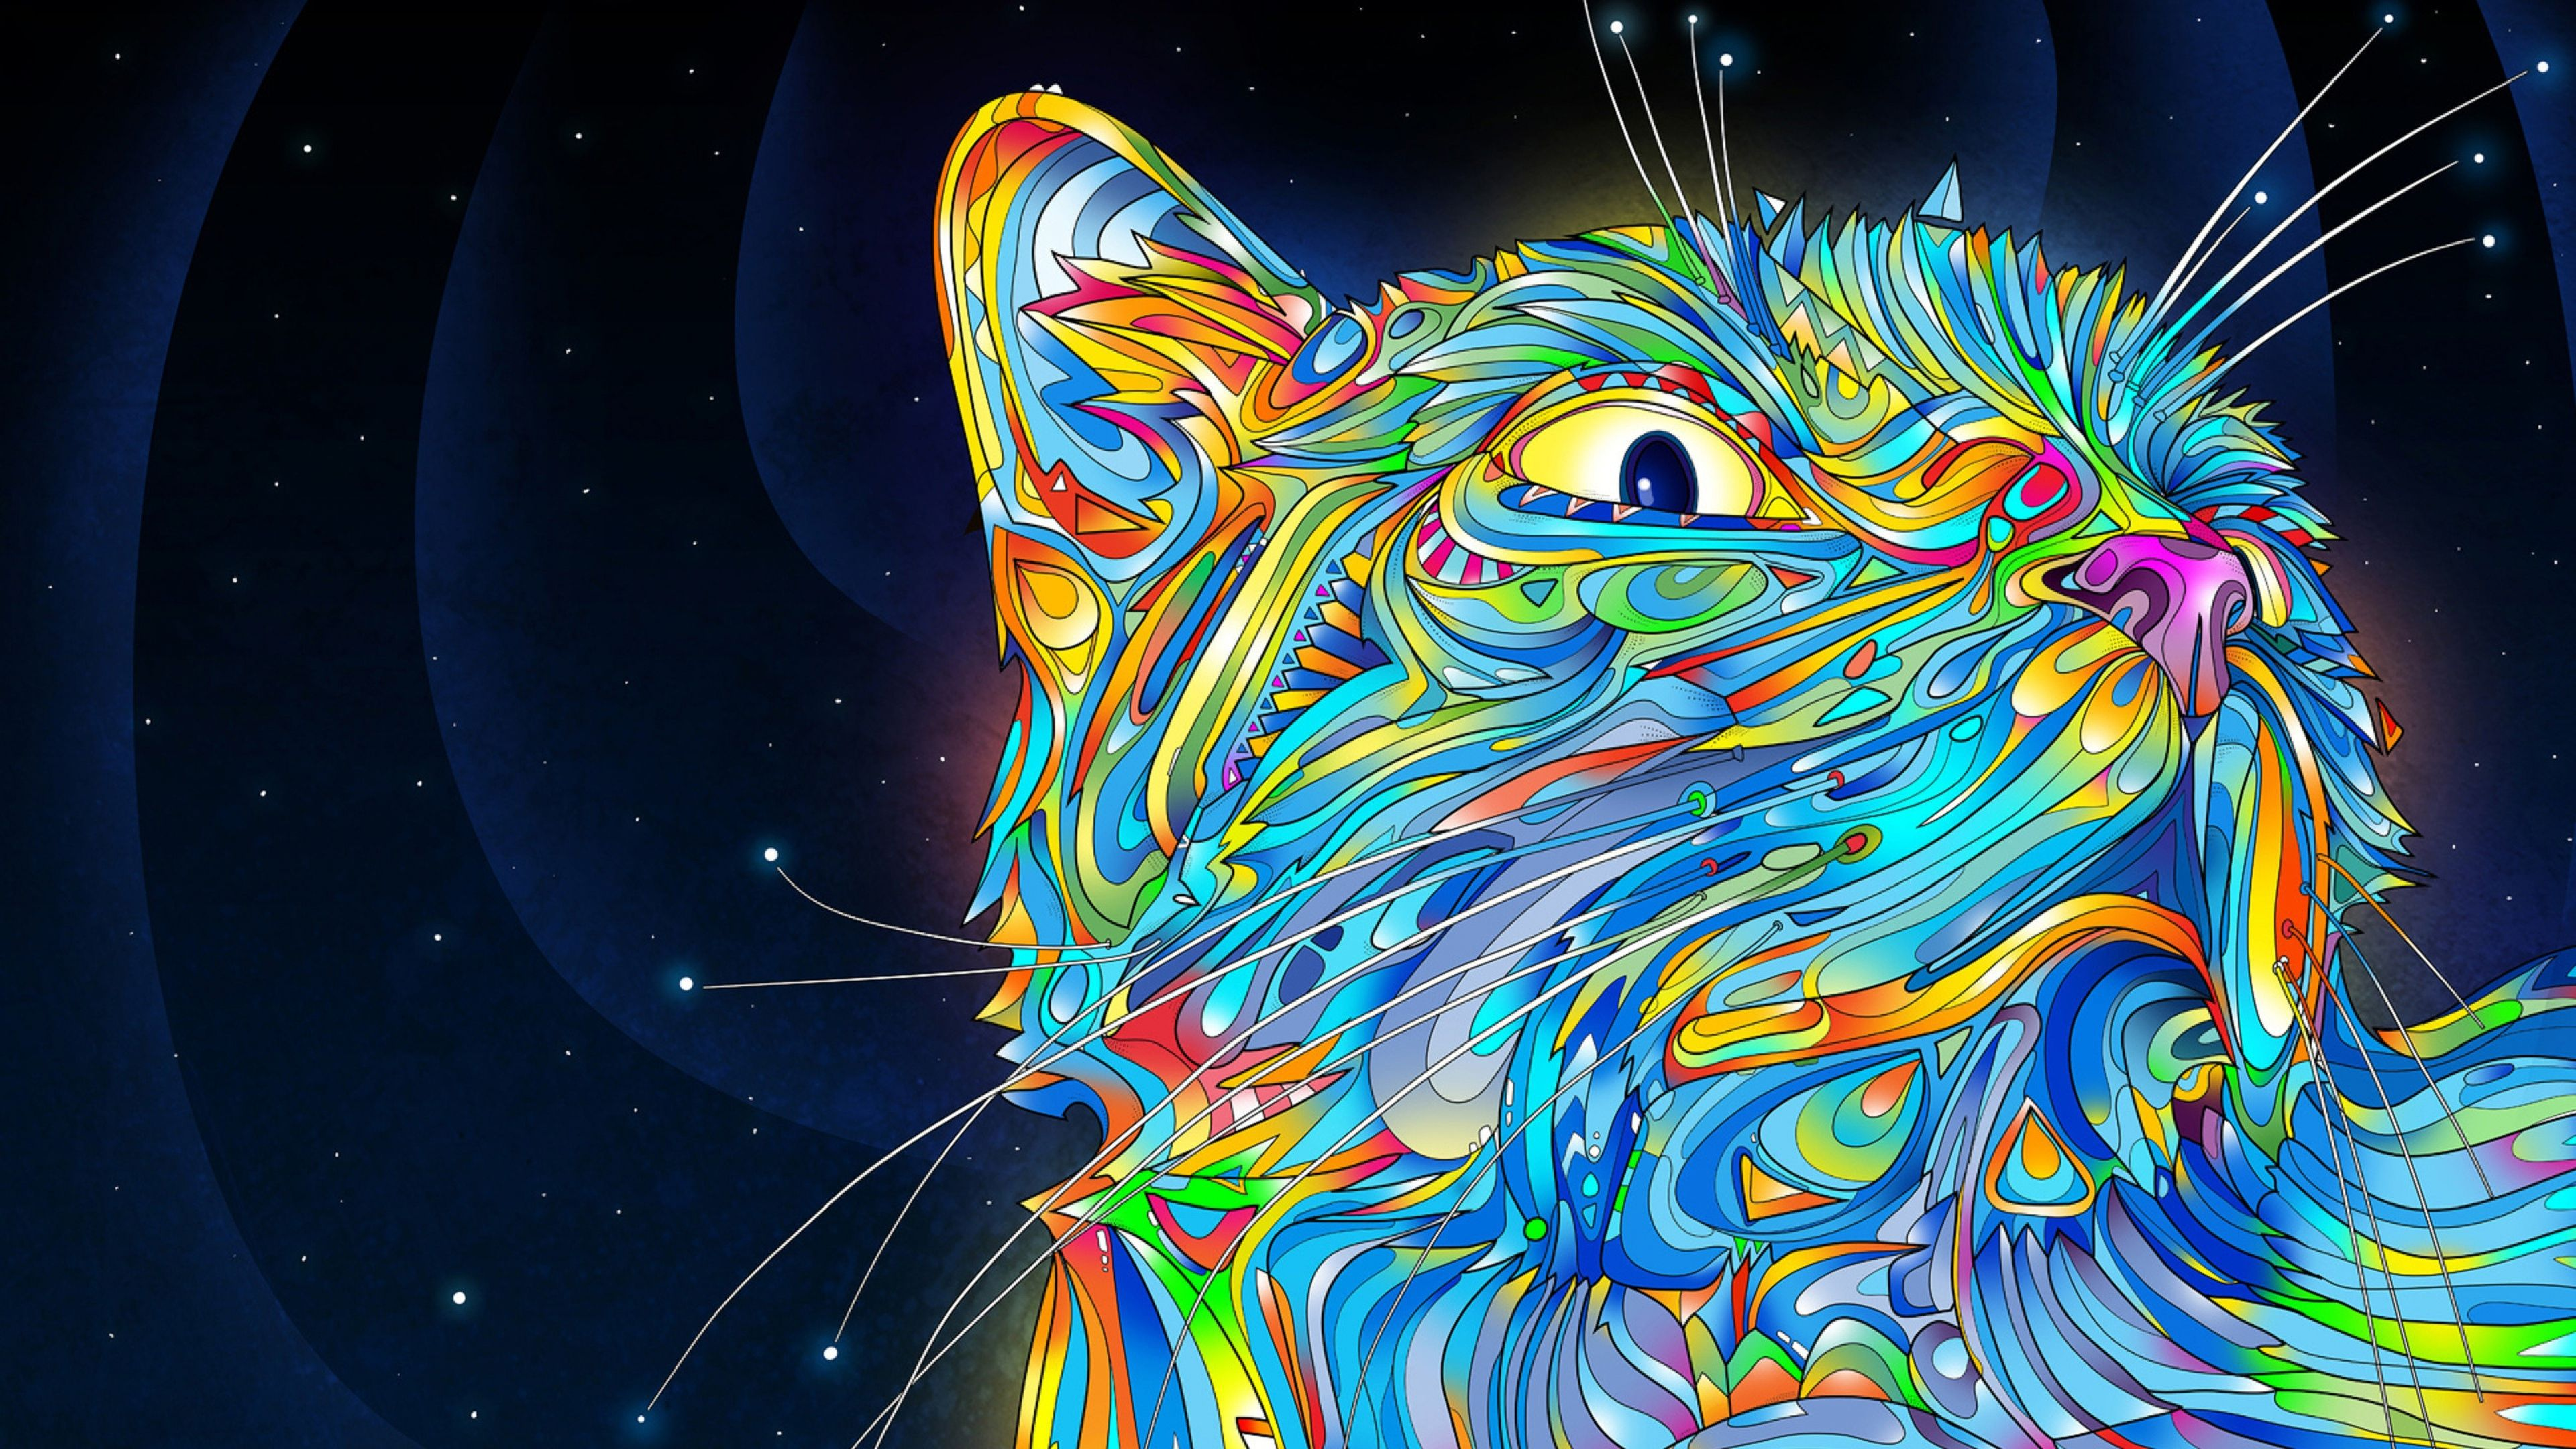 Abstraction Vector Cat Colorful Paint 321 3840x2160  #3840x2160 #Abstraction #Cat #Colorful #Paint #Vector Check more at https://wallpaperfree.org/abstract-wallpapers/abstraction-vector-cat-colorful-paint-321-3840x2160